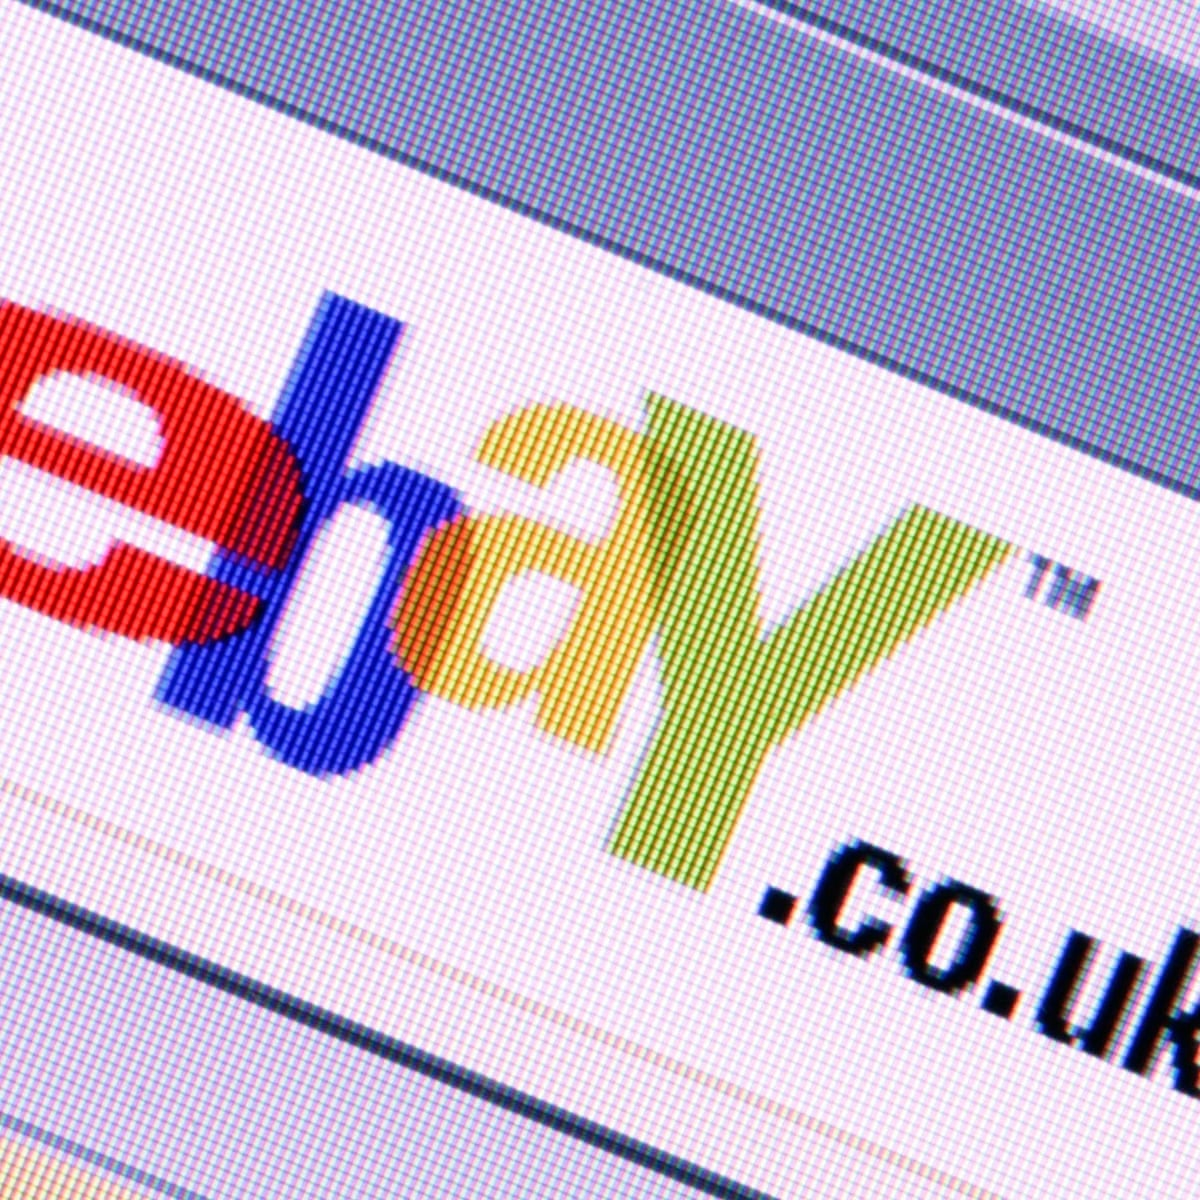 Ebay Pays 1 1m Uk Tax On Revenues It Told Us Investors Were 1 1bn Business The Guardian